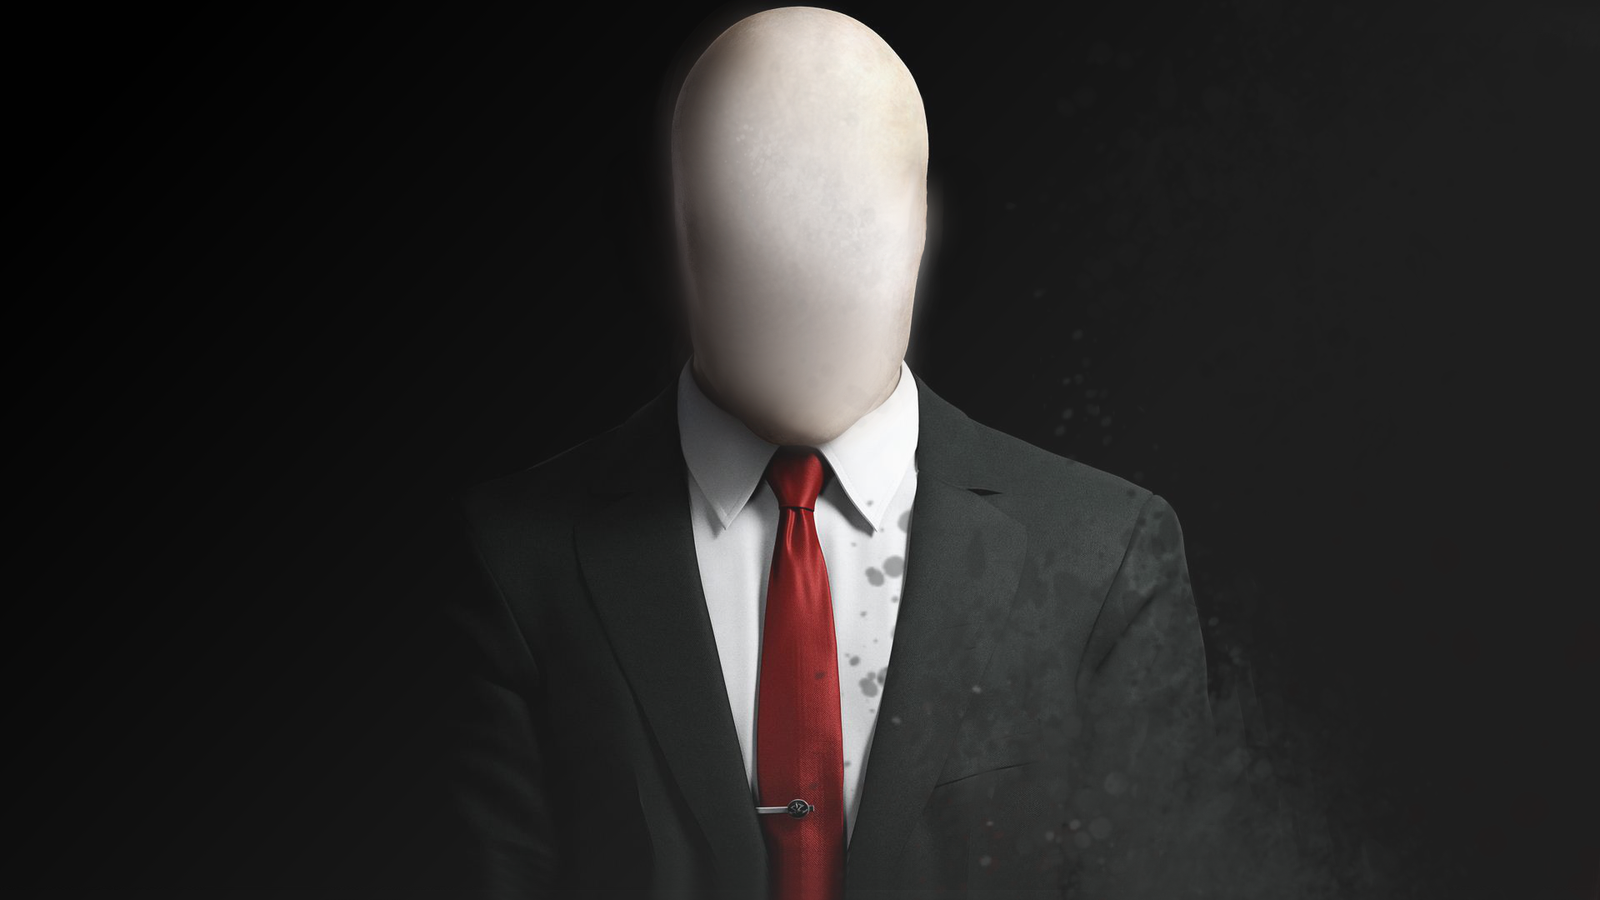 Slenderman: Myths, Murder and Humanity